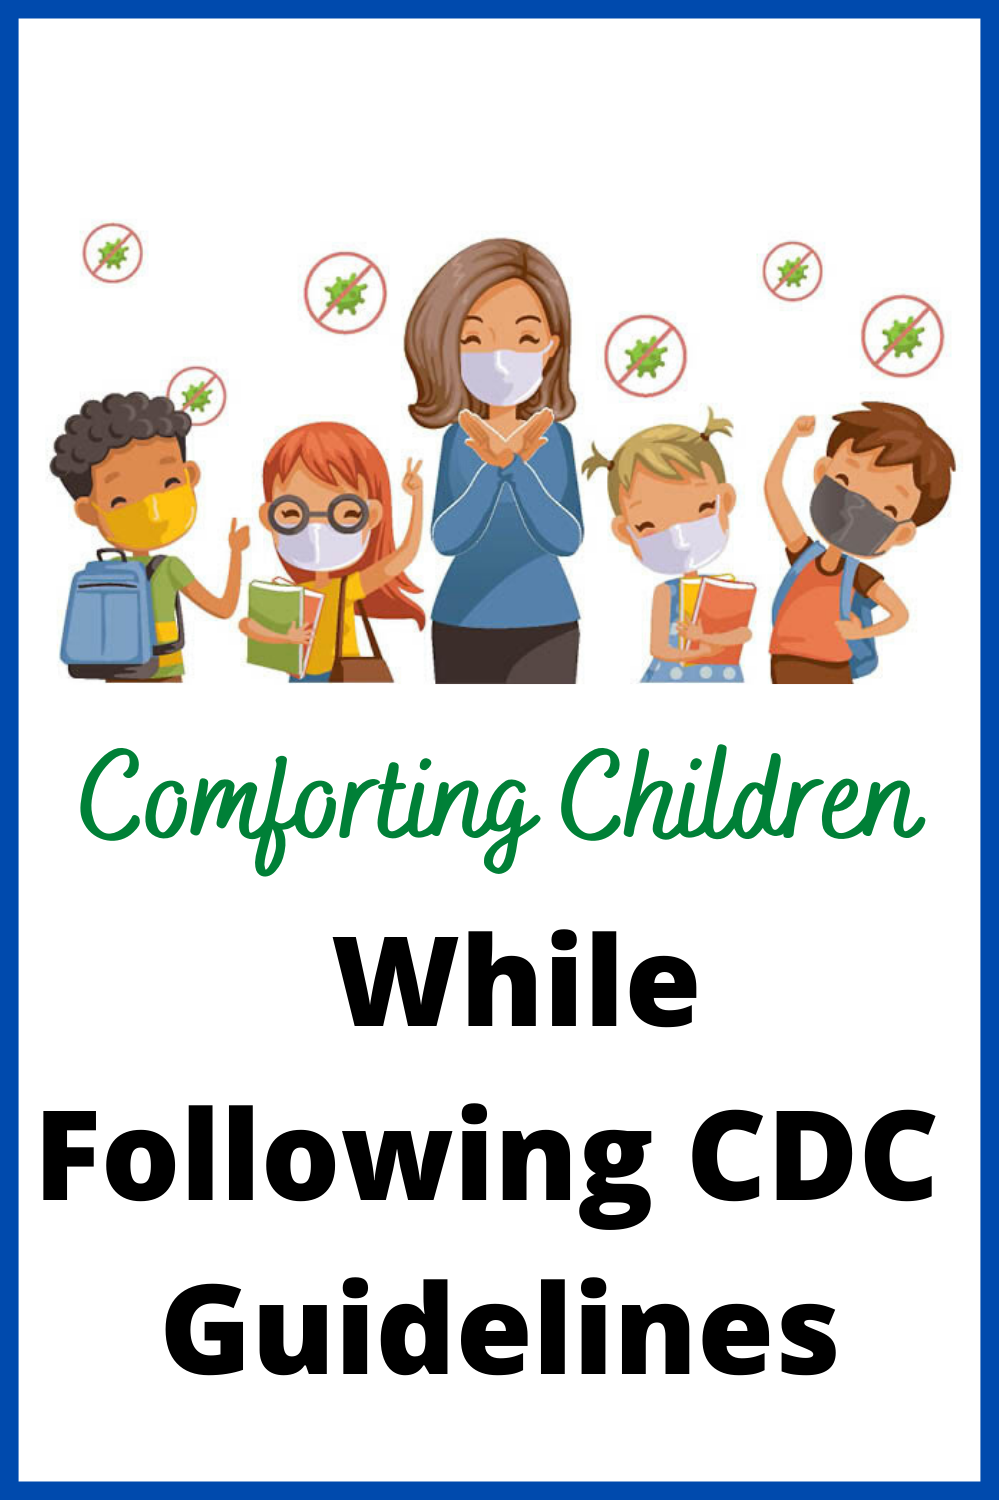 Comforting Children While Following CDC Guidelines in 2020